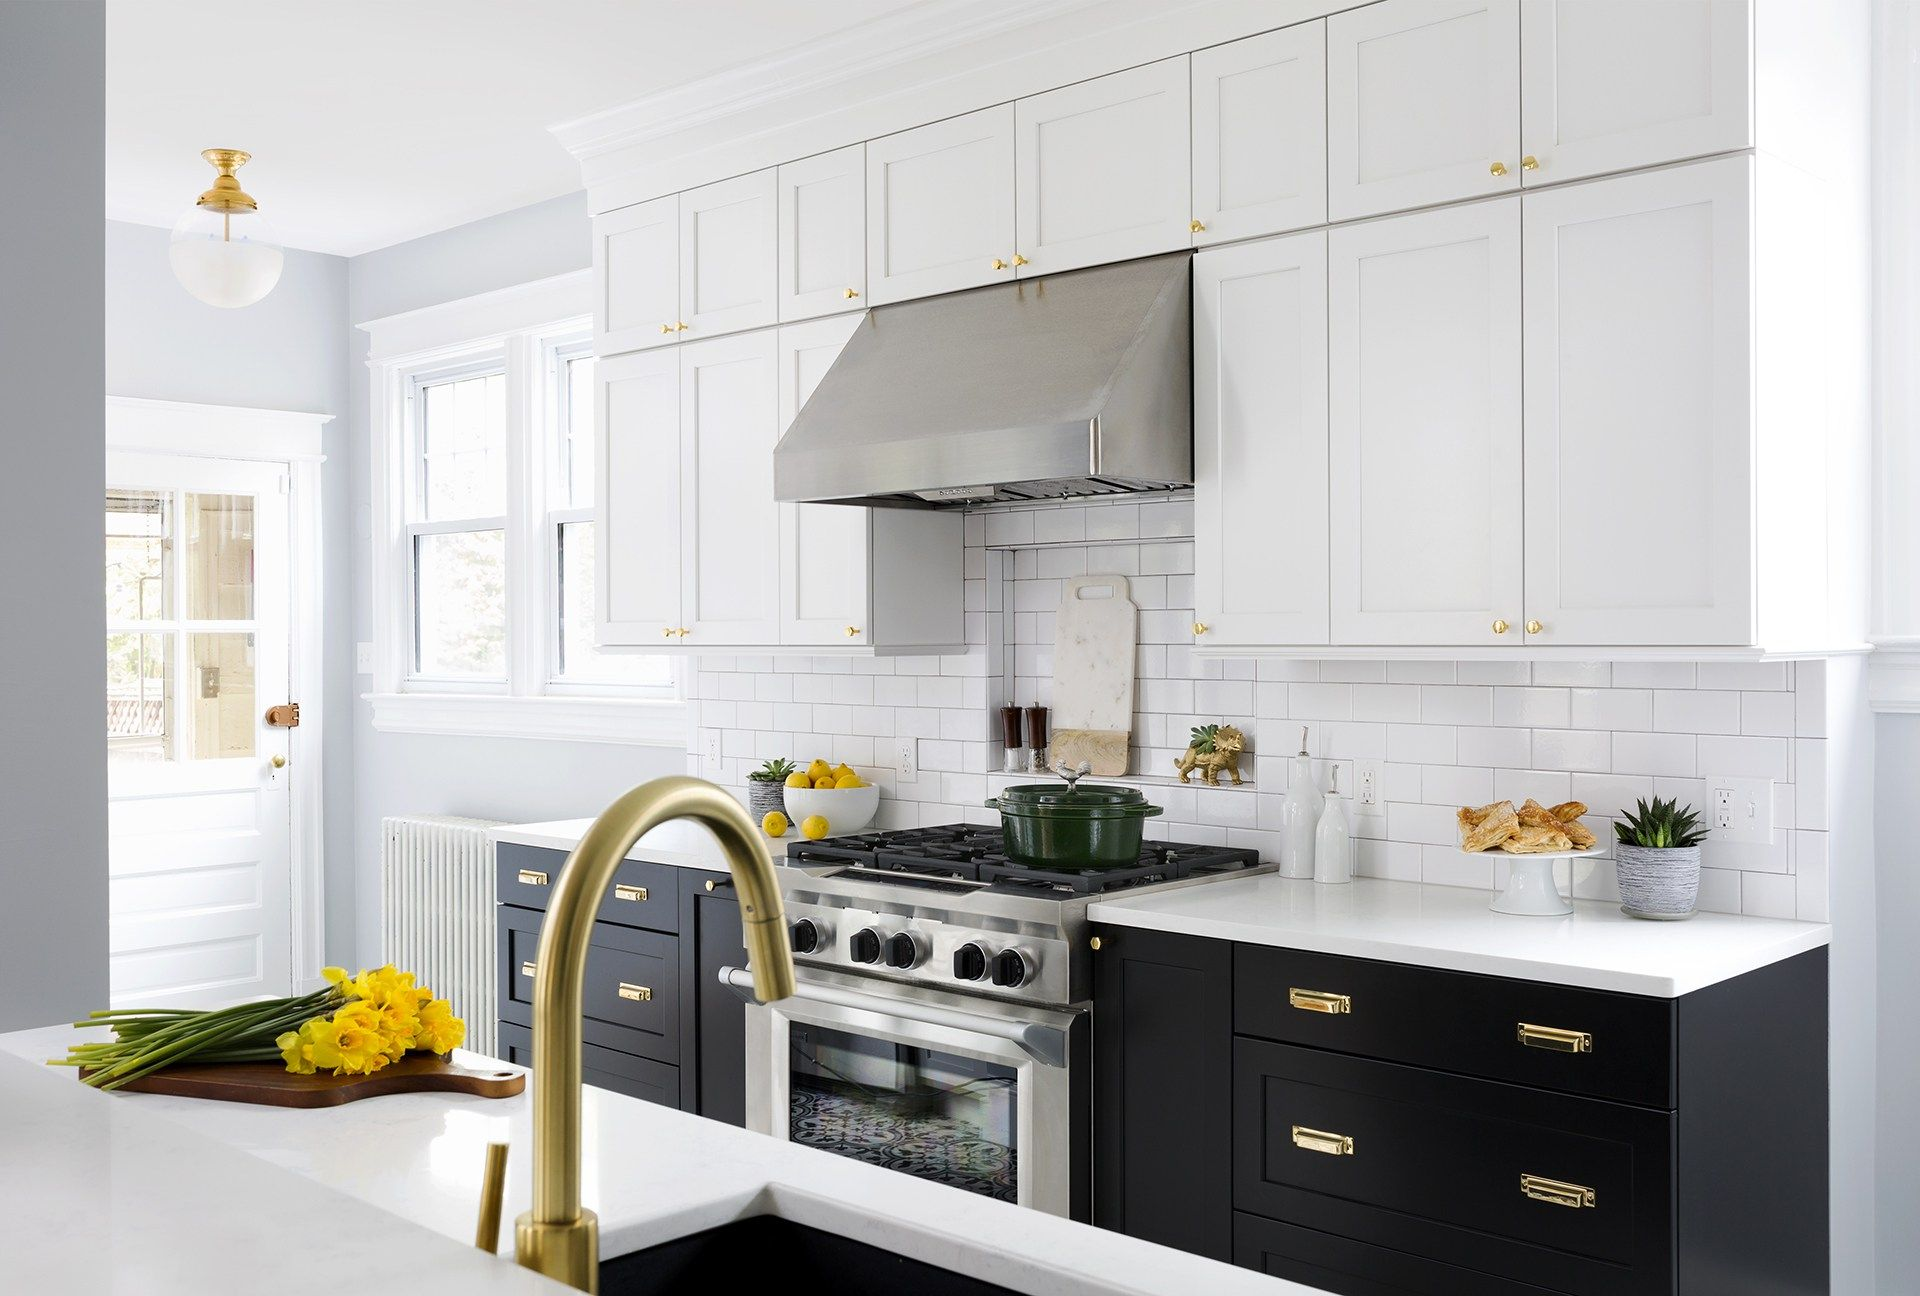 bronze and stainless in 2020 | Kitchen cabinets black ...